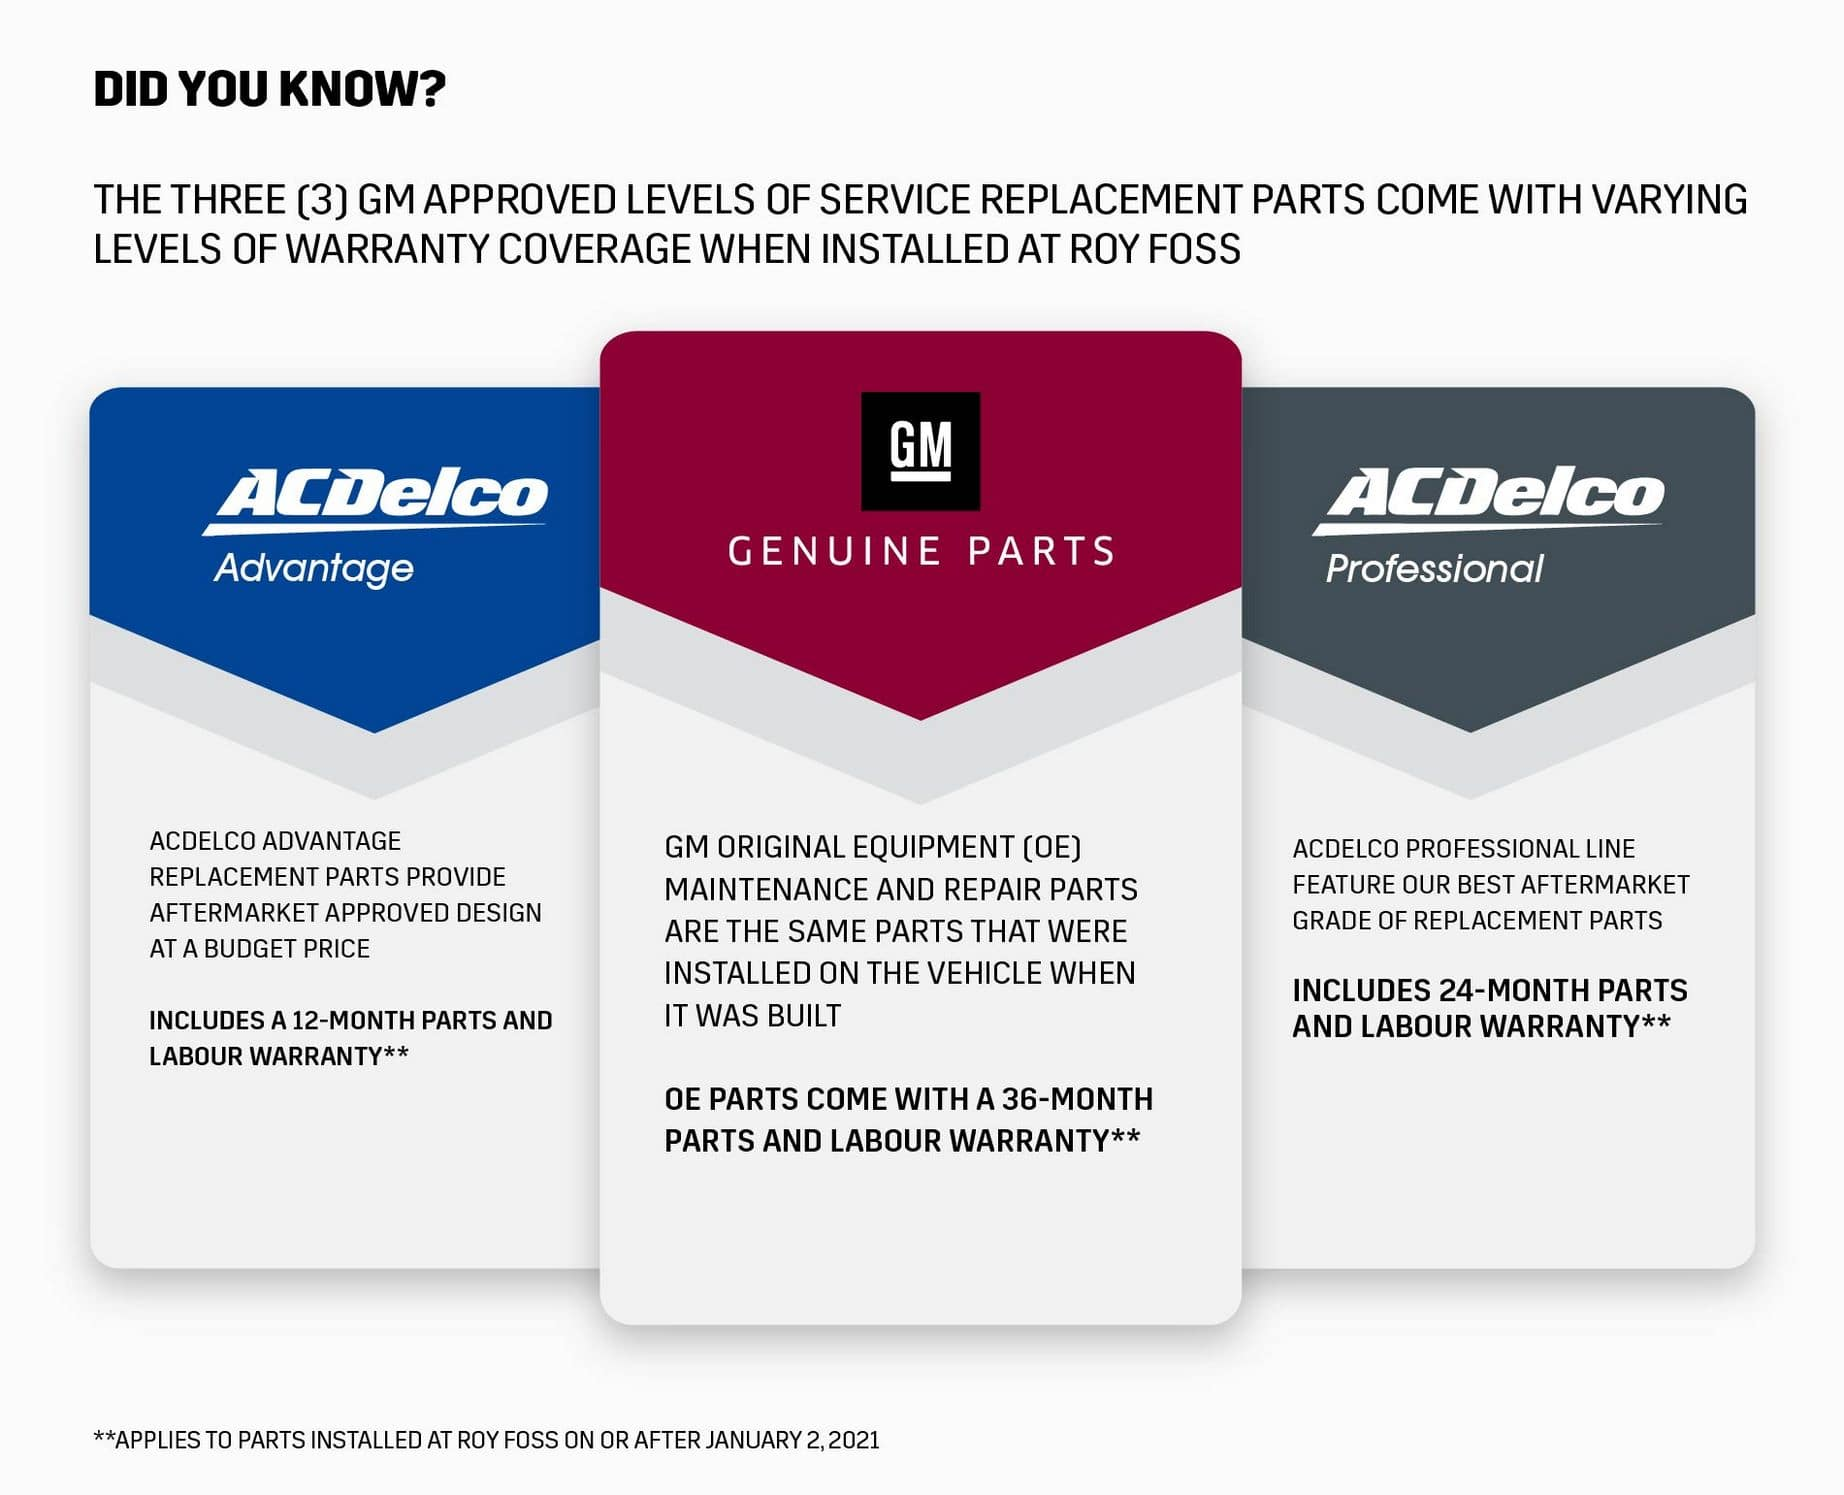 The three (3) GM approved levels of service replacement parts come with varying levels of warranty coverage when installed at Roy Foss: ACDelco Advantage, ACDelco Professional and GM Genuine Parts